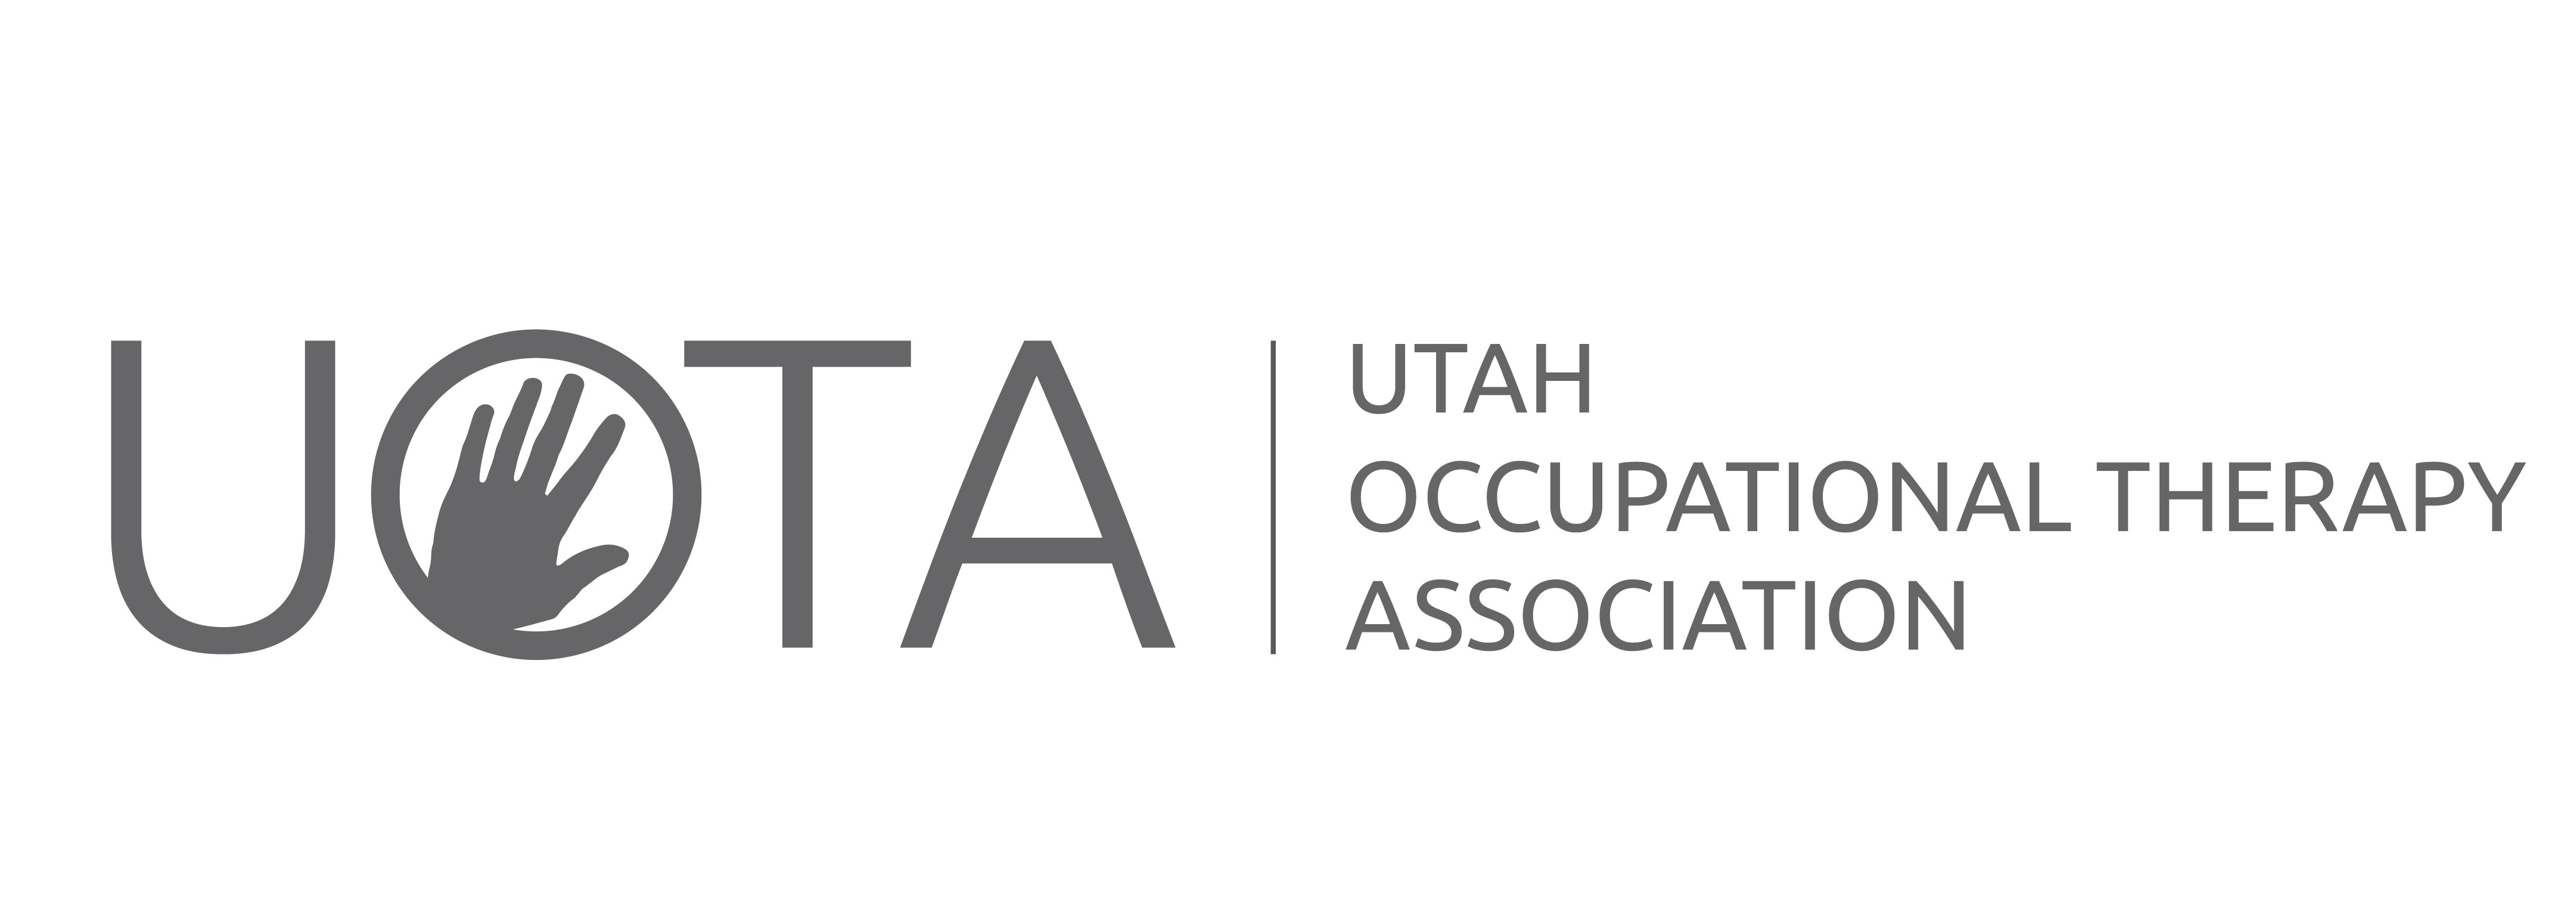 utah occupational therapy